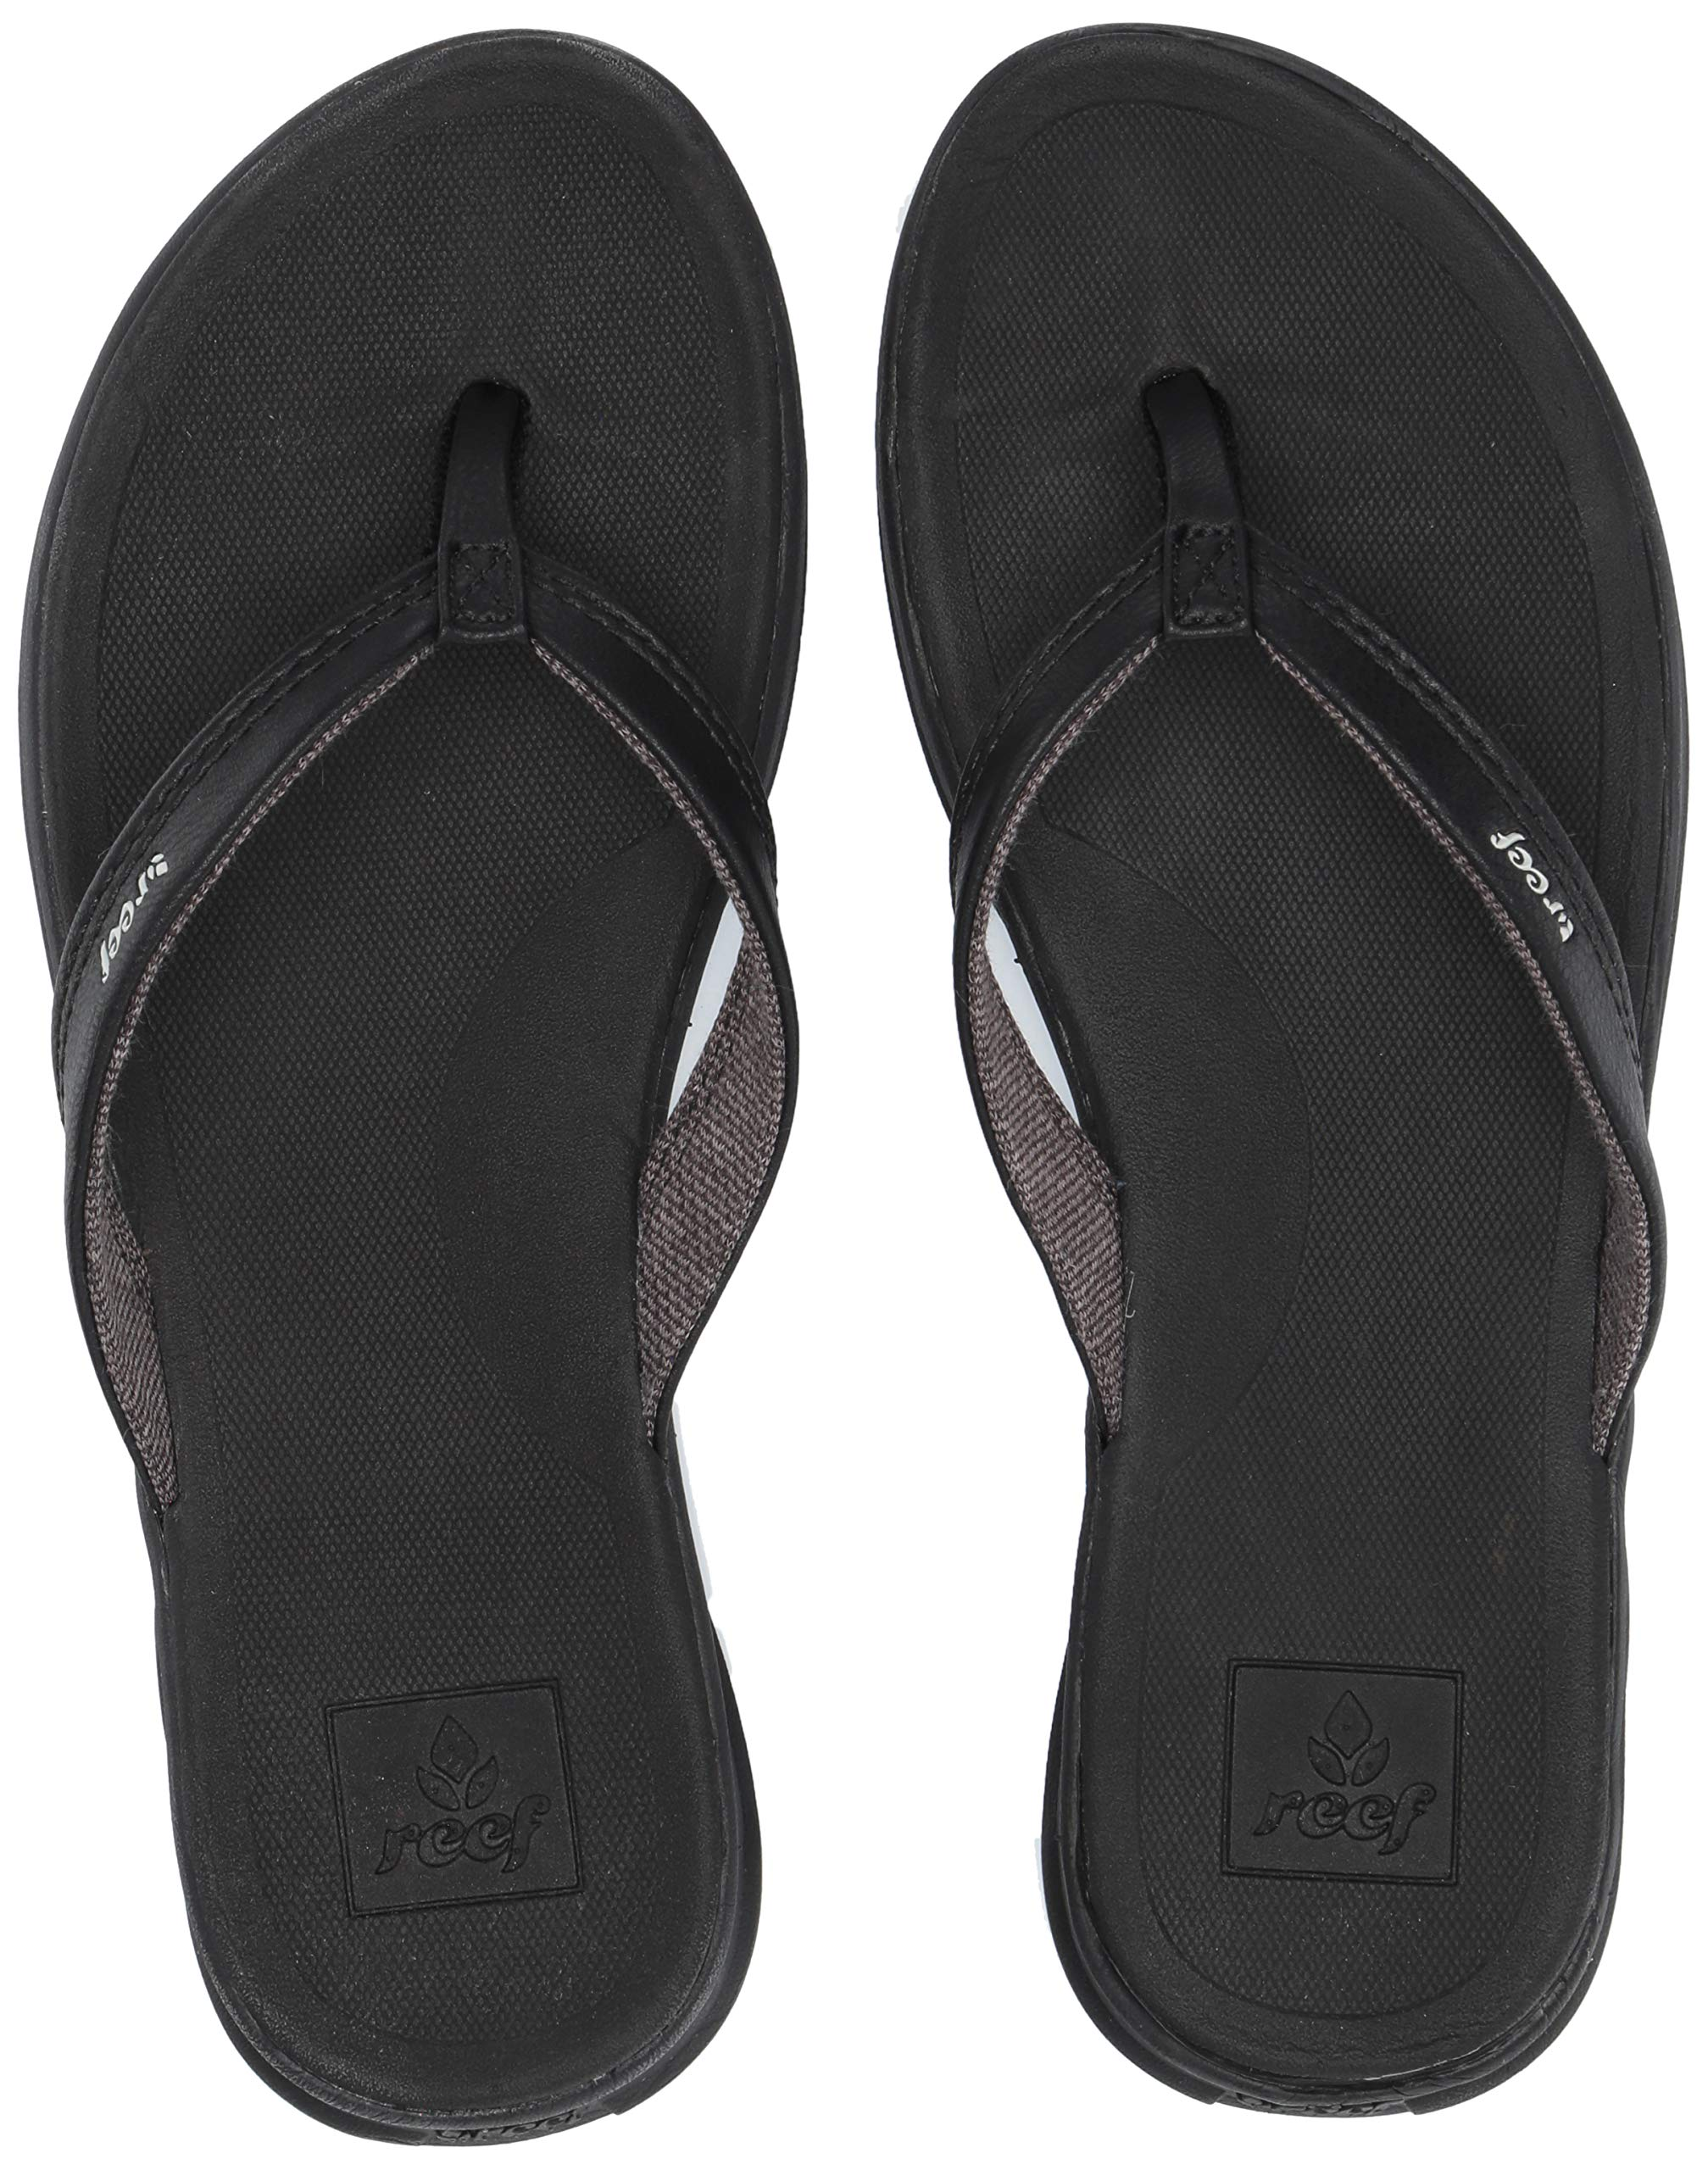 Reef Women's Sandals Rover Catch | Water-Friendly with Signature Swellular Technology for Instant Comfort and Durability, Black, 8 by REEF